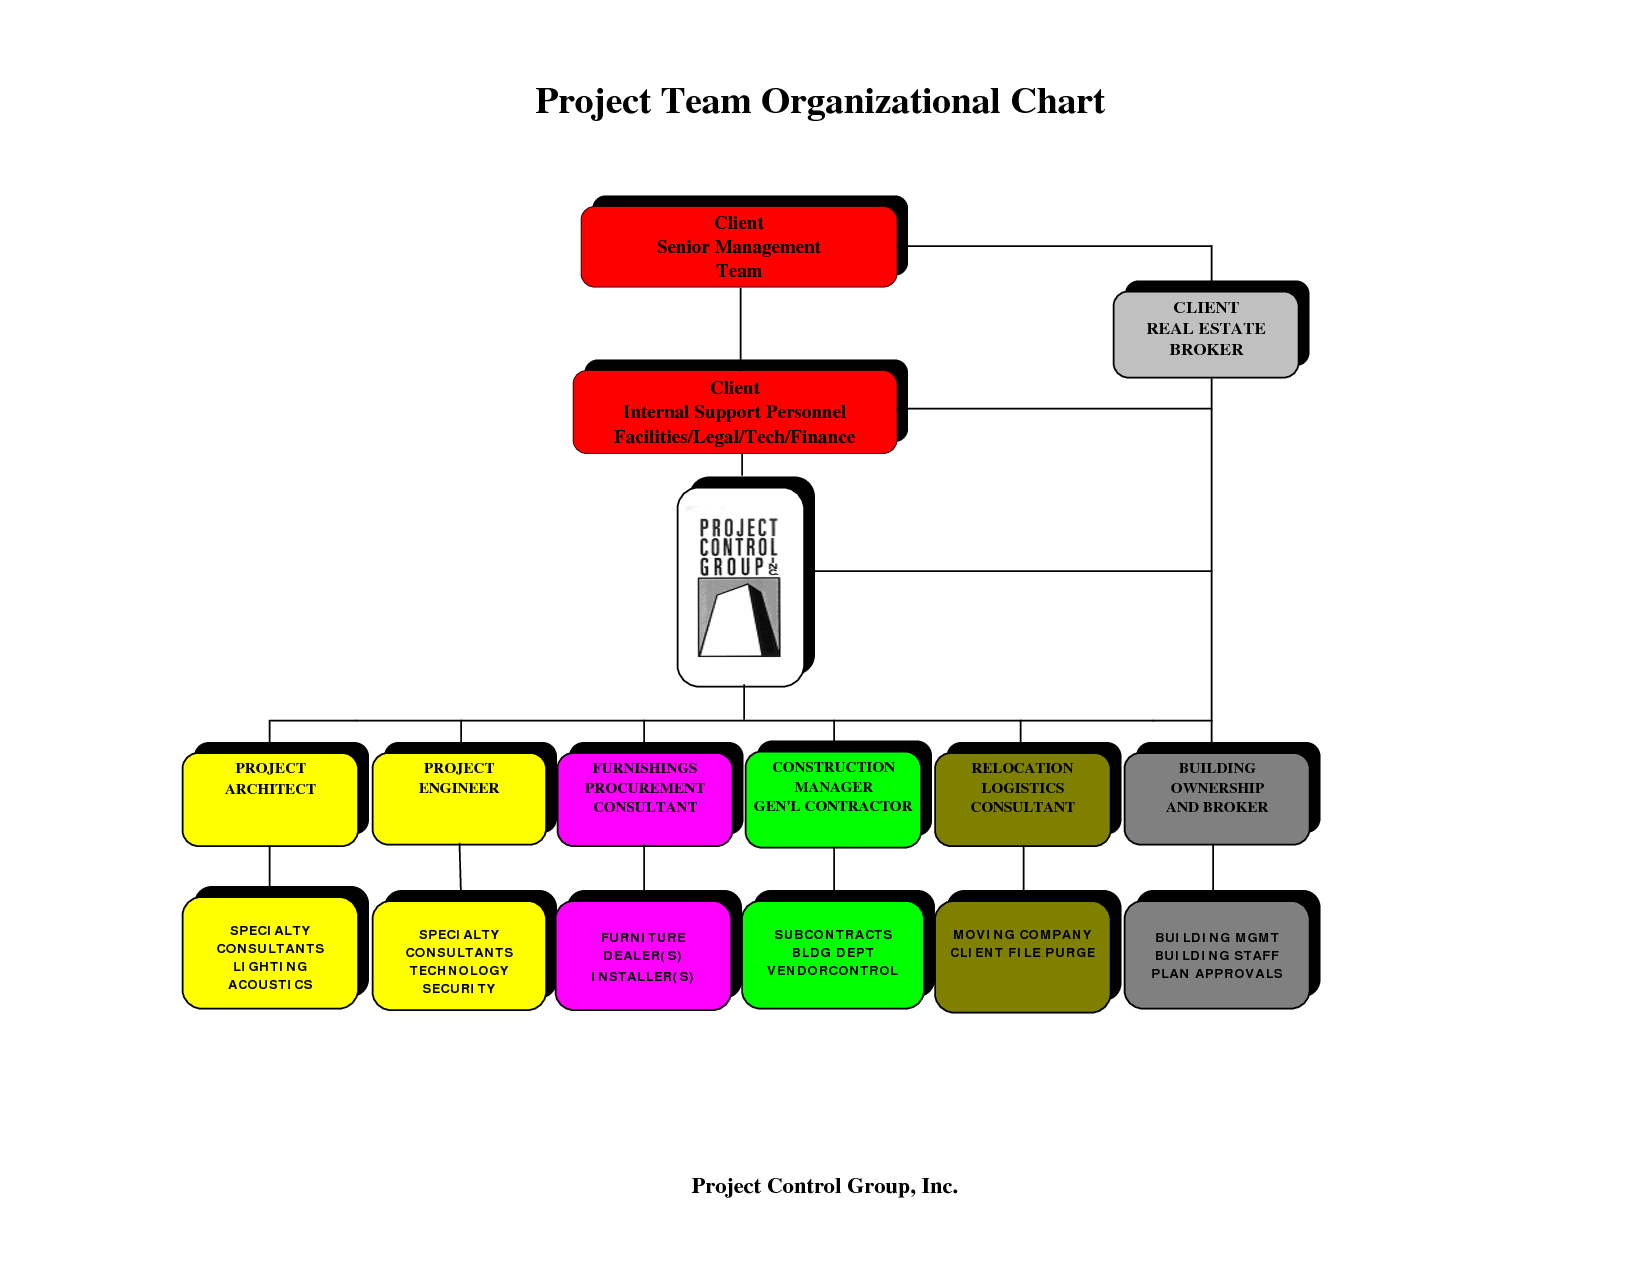 best ideas about organizational chart chart construction organizational chart template construction company organizational chart template